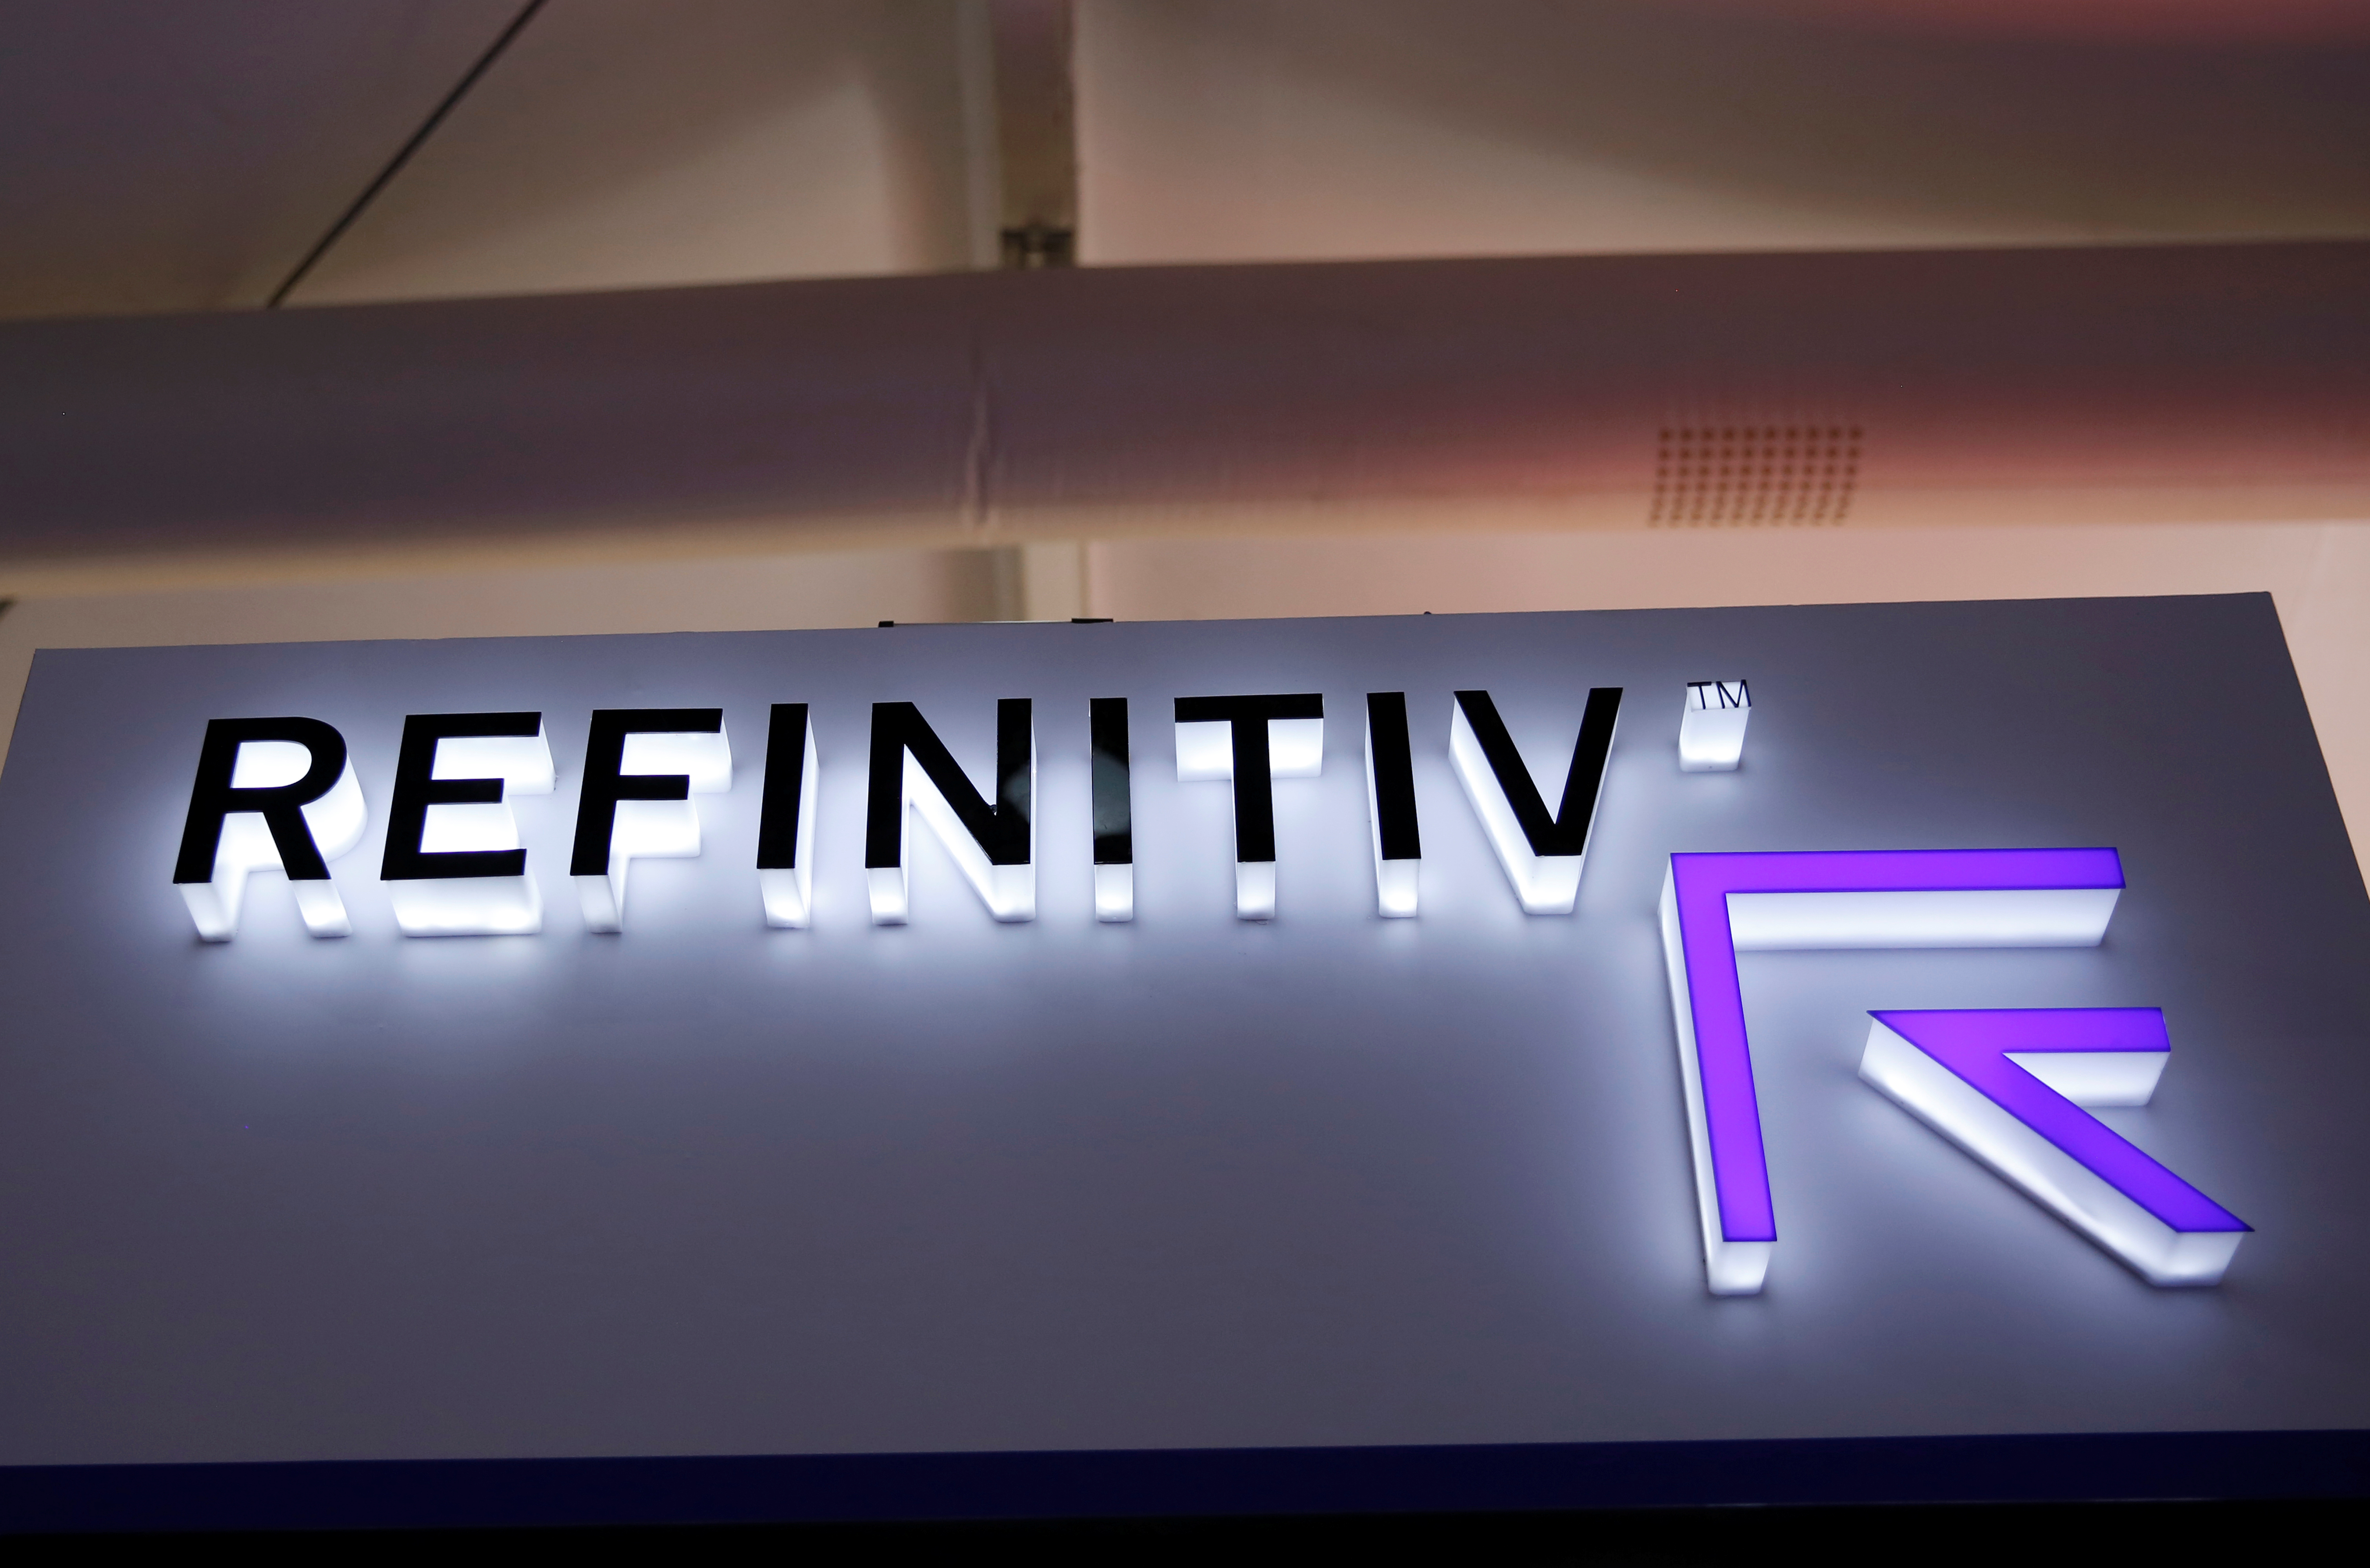 The logo of Refinitiv is seen at its booth at the 2020 China International Fair for Trade in Services (CIFTIS) in Beijing, China September 5, 2020. REUTERS/Tingshu Wang/Files